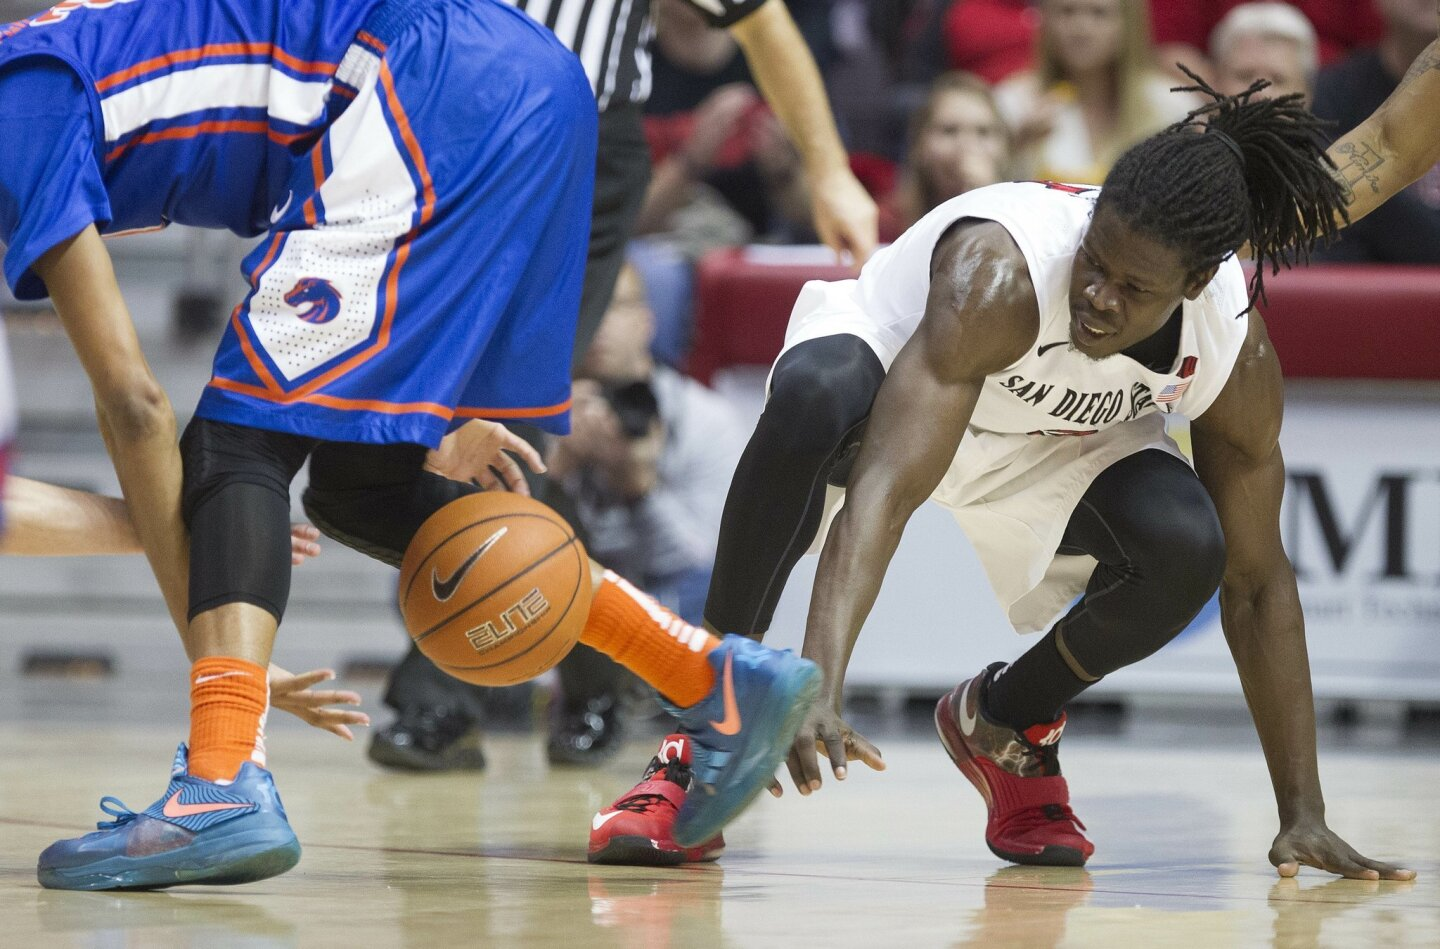 San Diego State vs. Boise State Men's Basketball at Viejas Arena. San Diego State Aztecs forward Angelo Chol (3) battles for a loose ball on the ground in the first half.